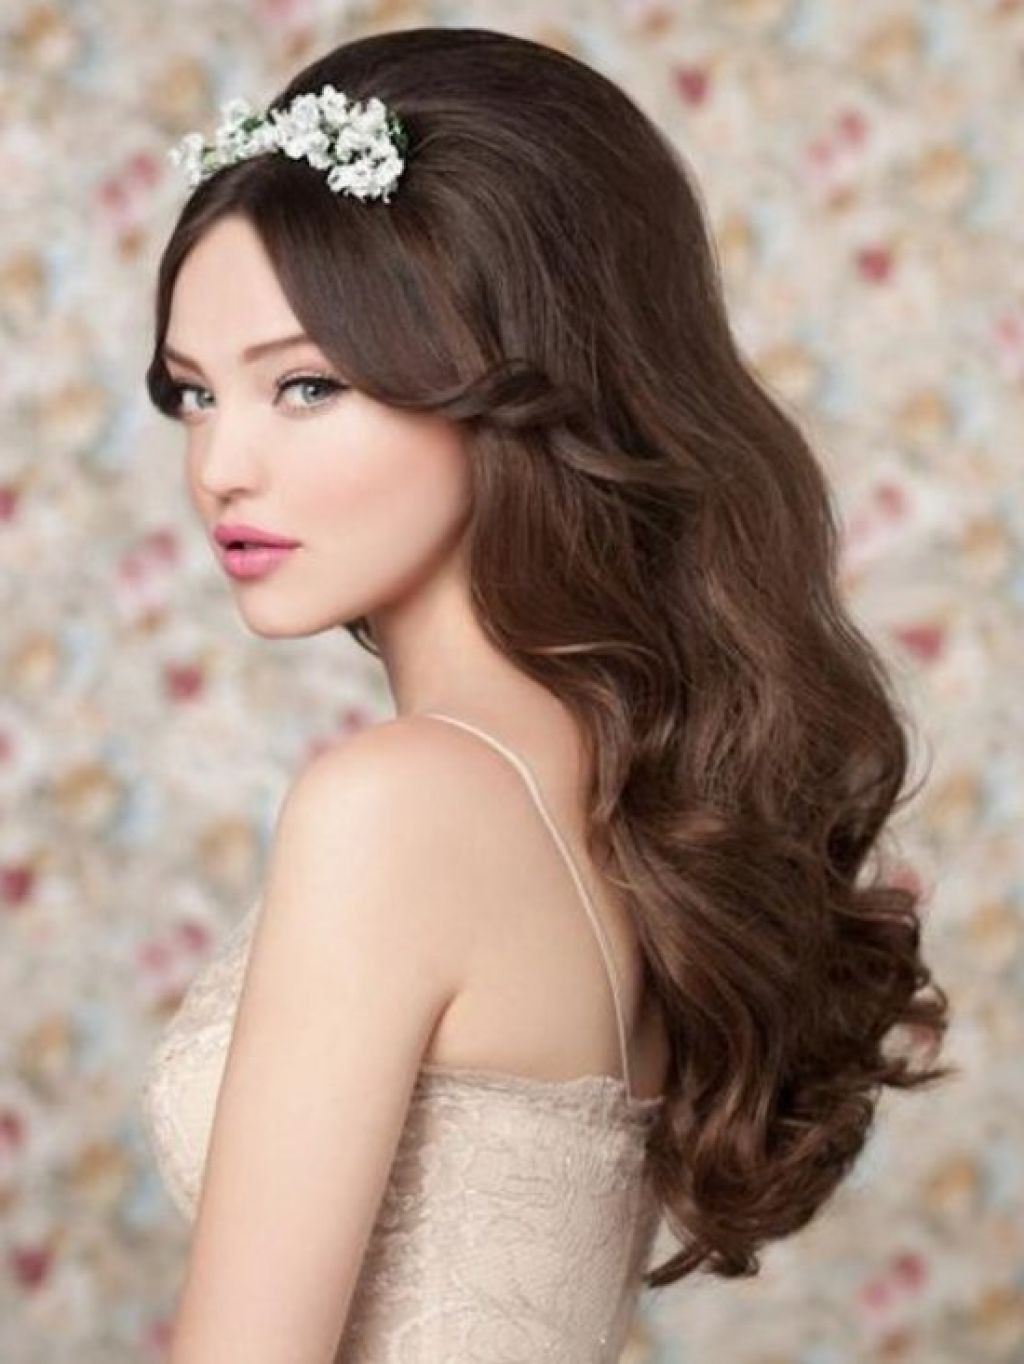 Long Hairstyles For Weddings  20 Classic Wedding Hairstyles Long Hair MagMent